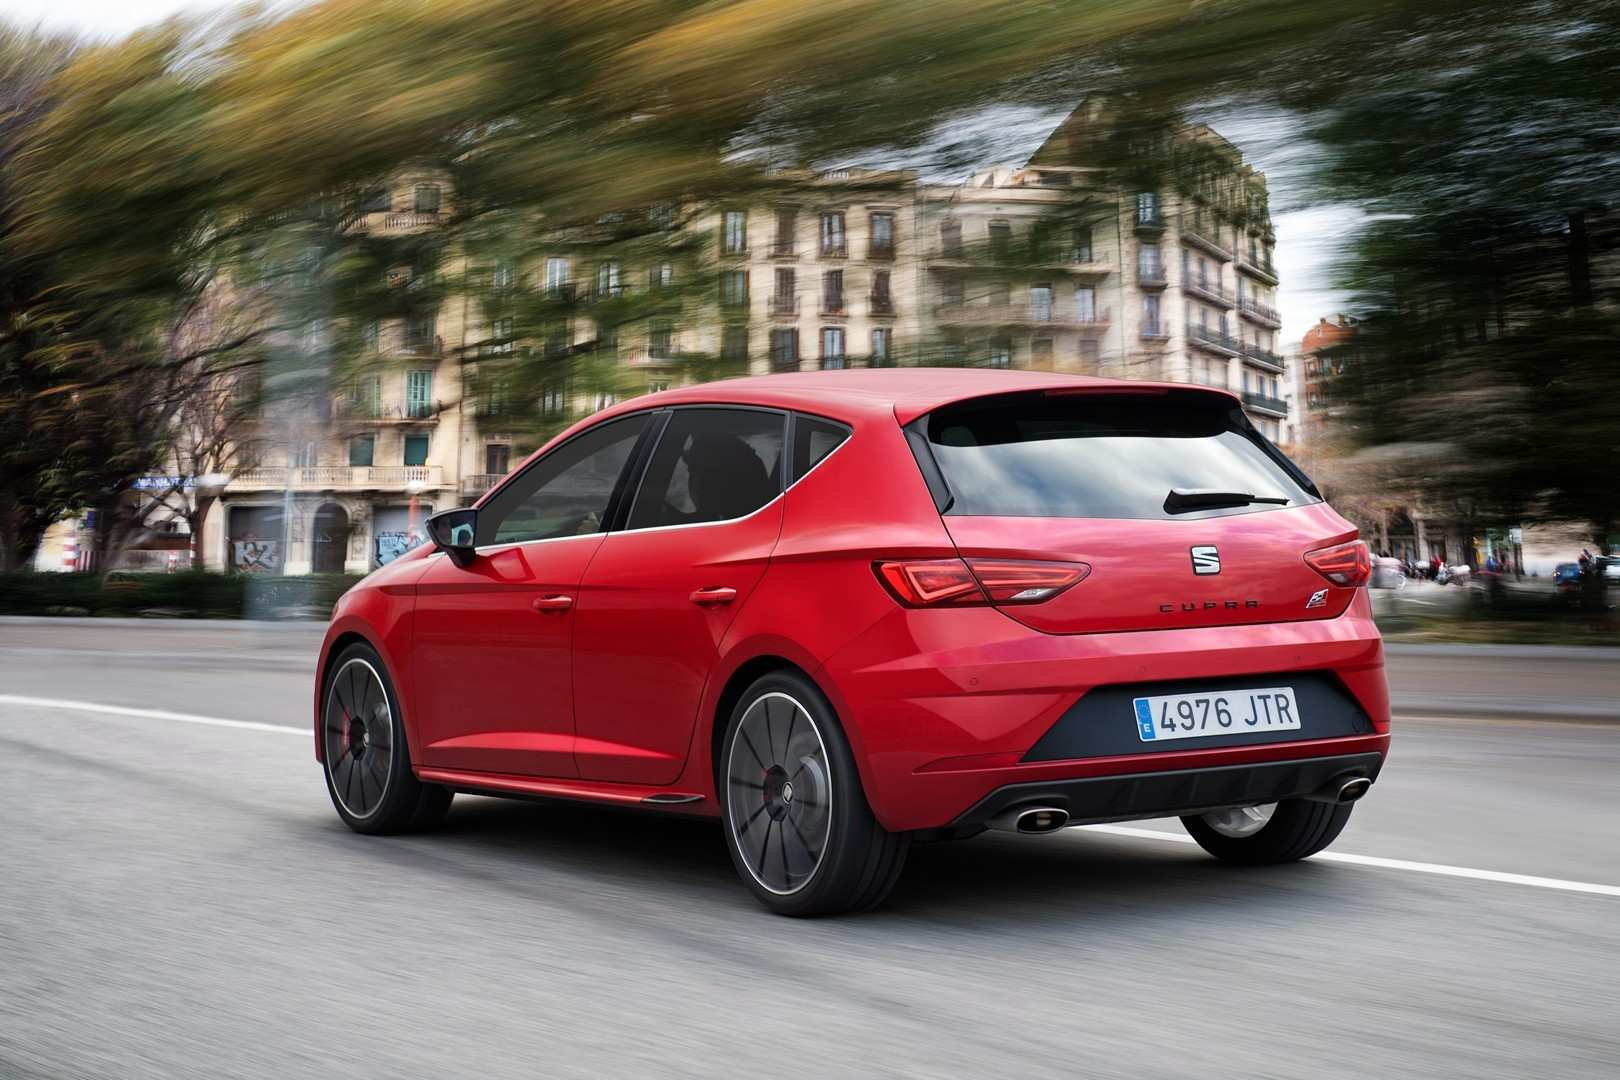 72 A 2020 Seat Ibiza Price Design And Review